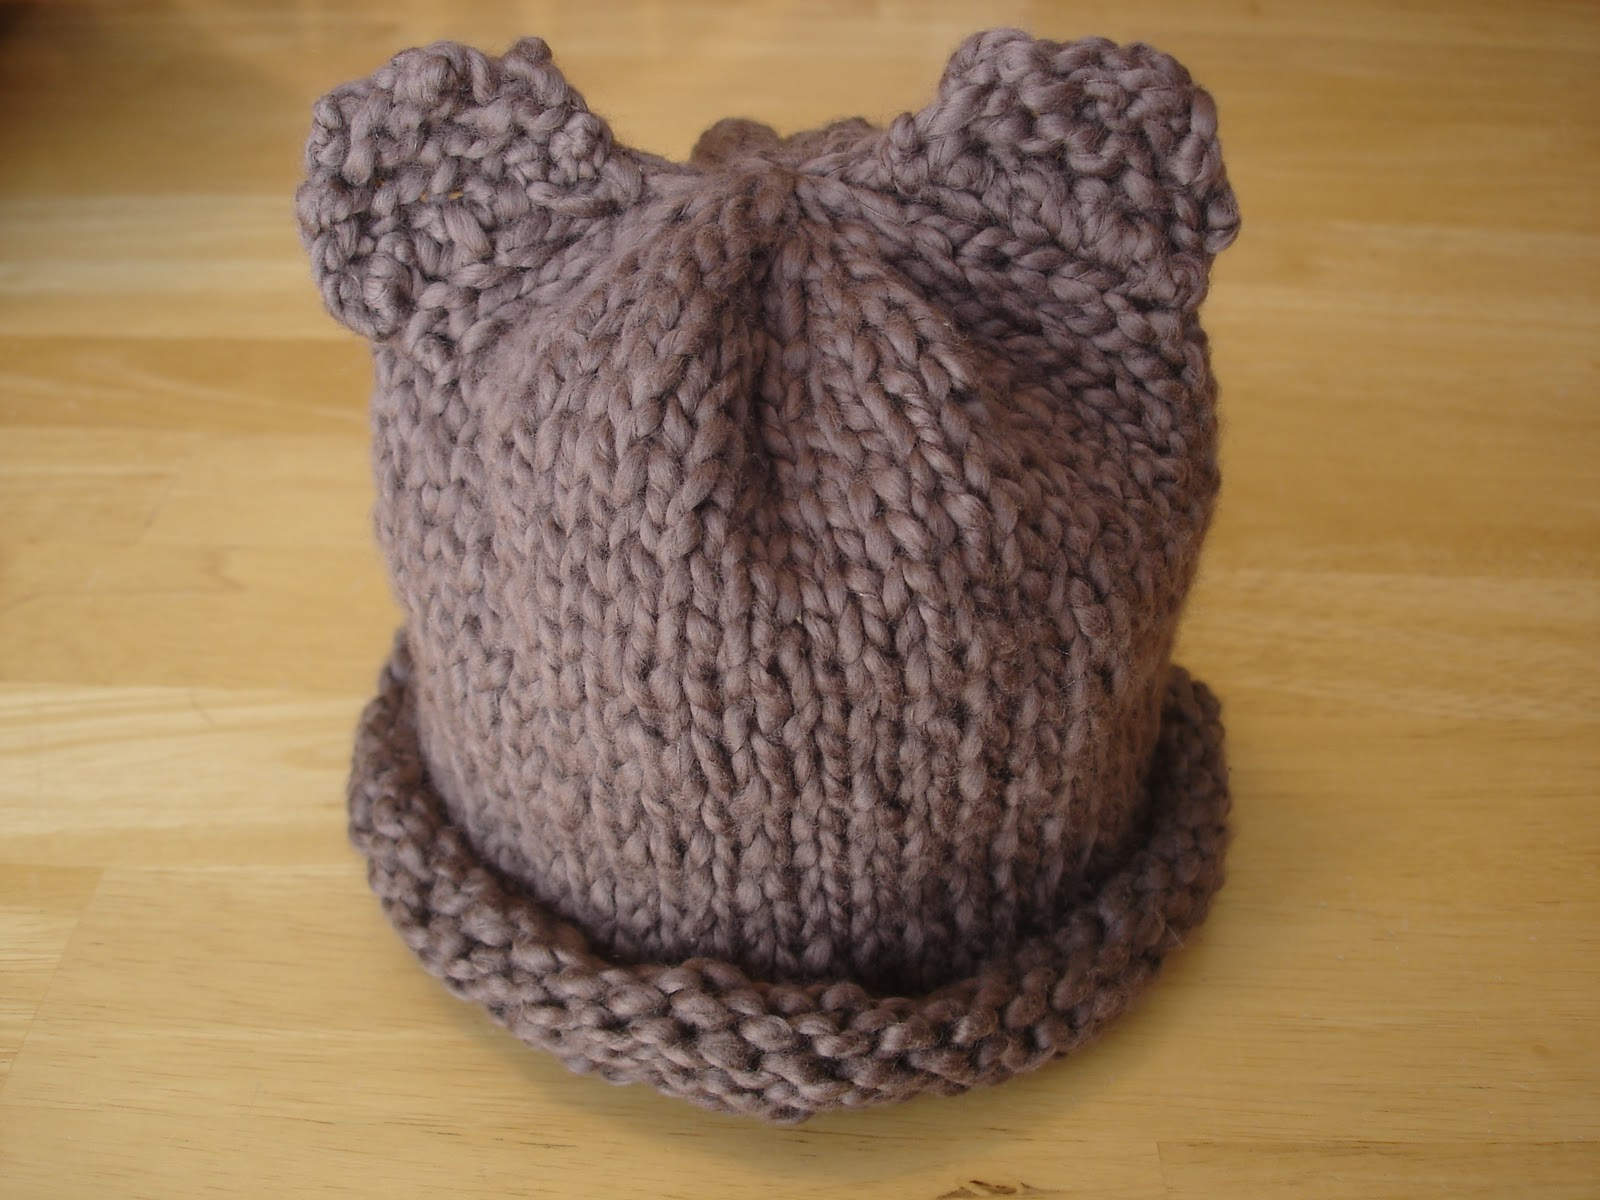 Free Knitting Pattern For Baby Hats : Fiber Flux: Free Knitting Pattern...Baby Bear Hat for Preemie, Newborn, and B...